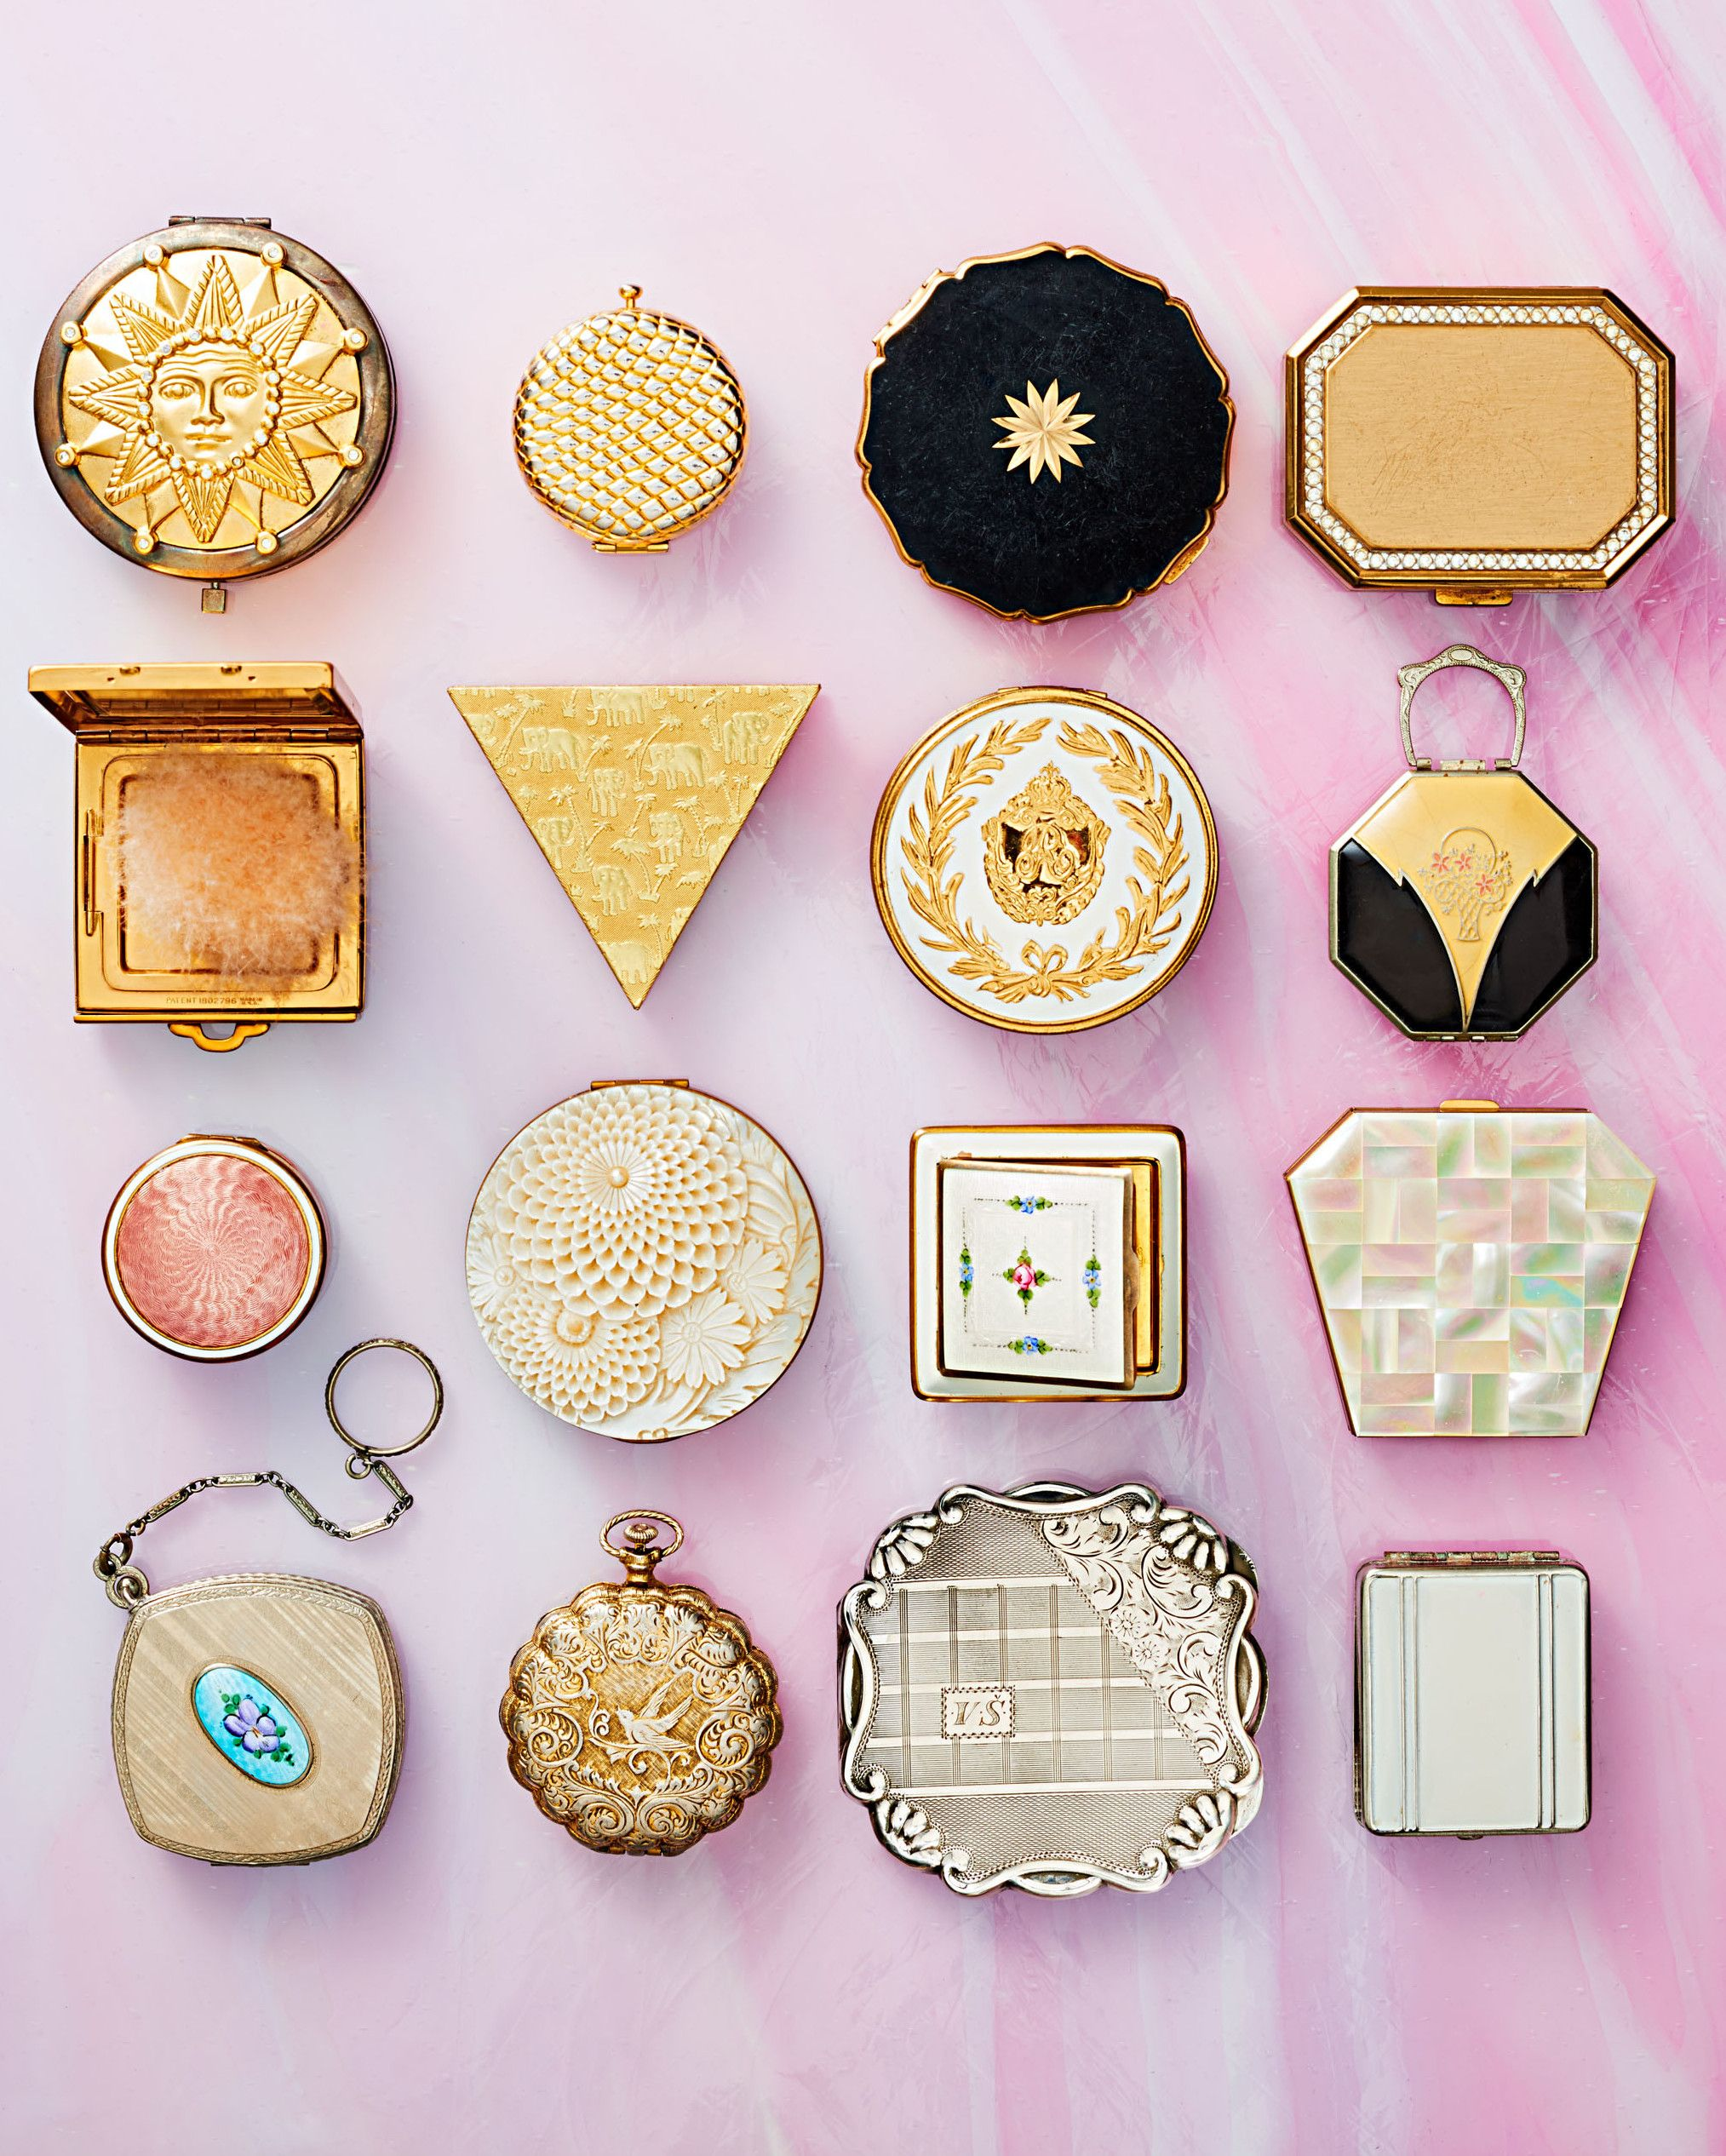 Why We Love Collecting Compact Mirrors Compact mirror